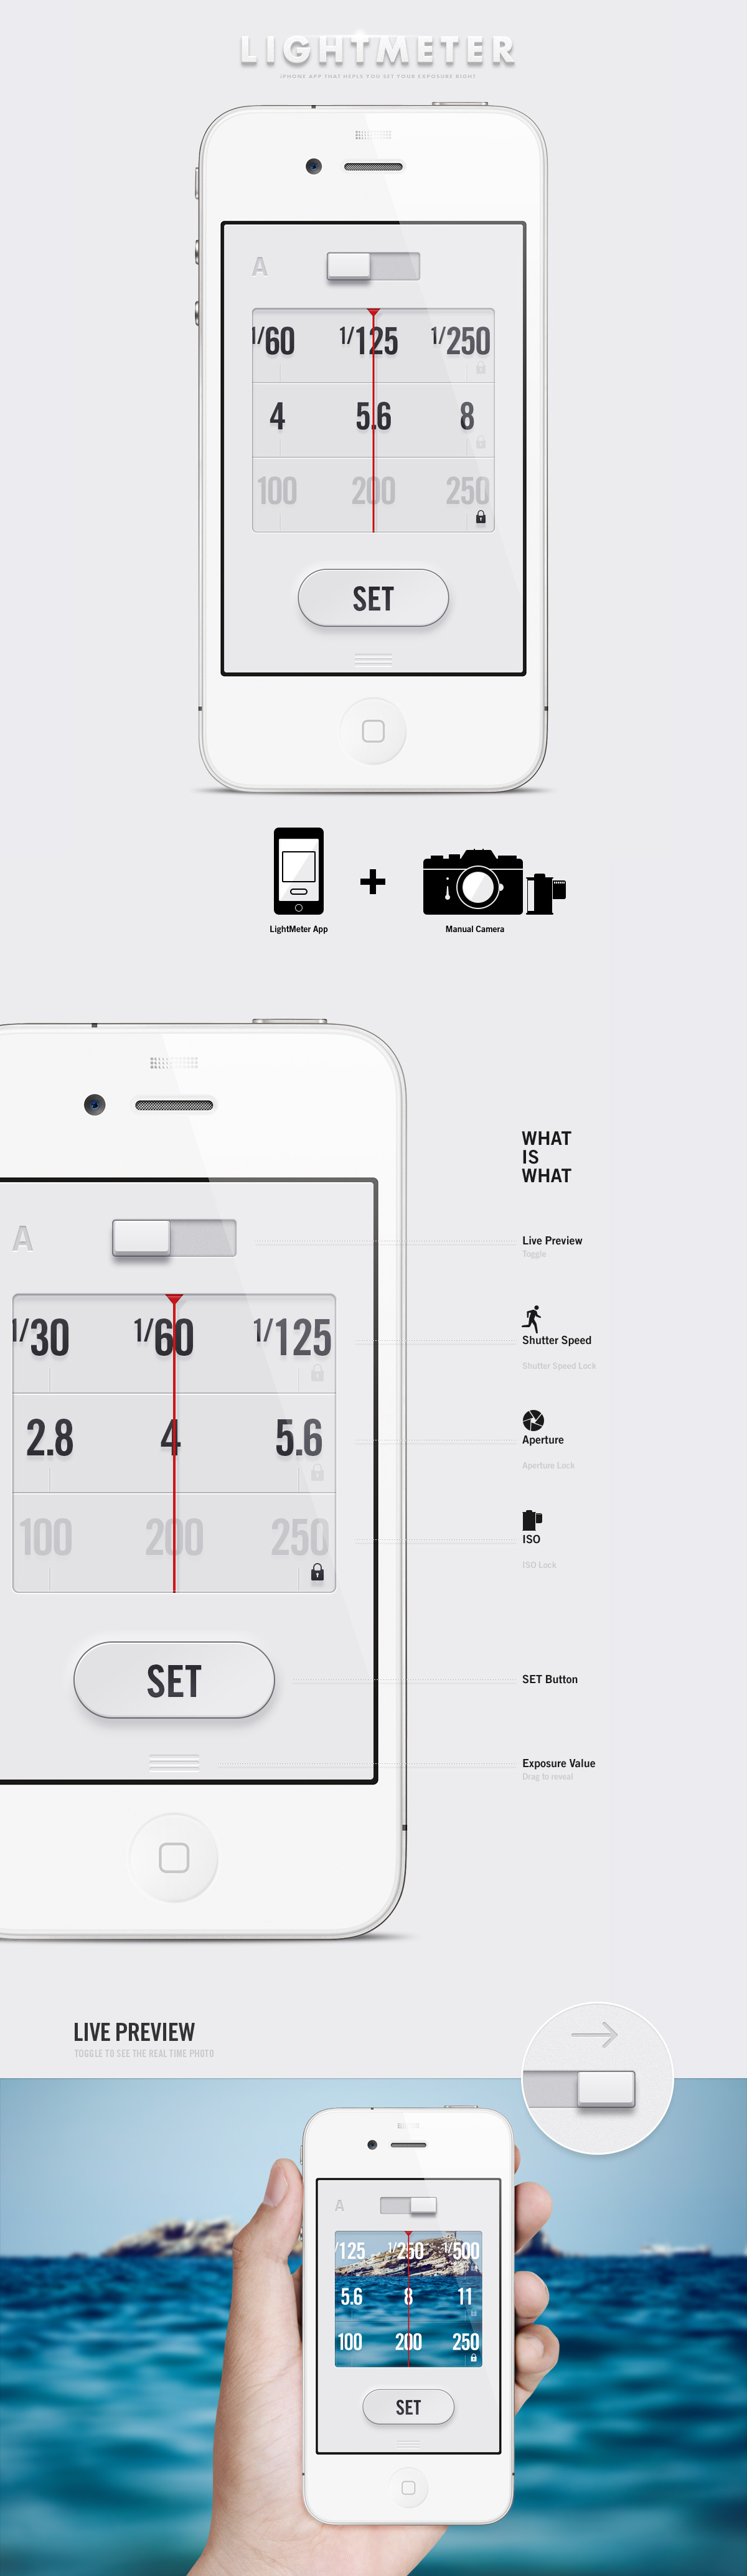 Snazzy App Under Lightmeter App Anton Repponen Museum Allows You To See Live Preview Design Artifacts Photo As Well As Balanceit Over dpreview Light Meter App